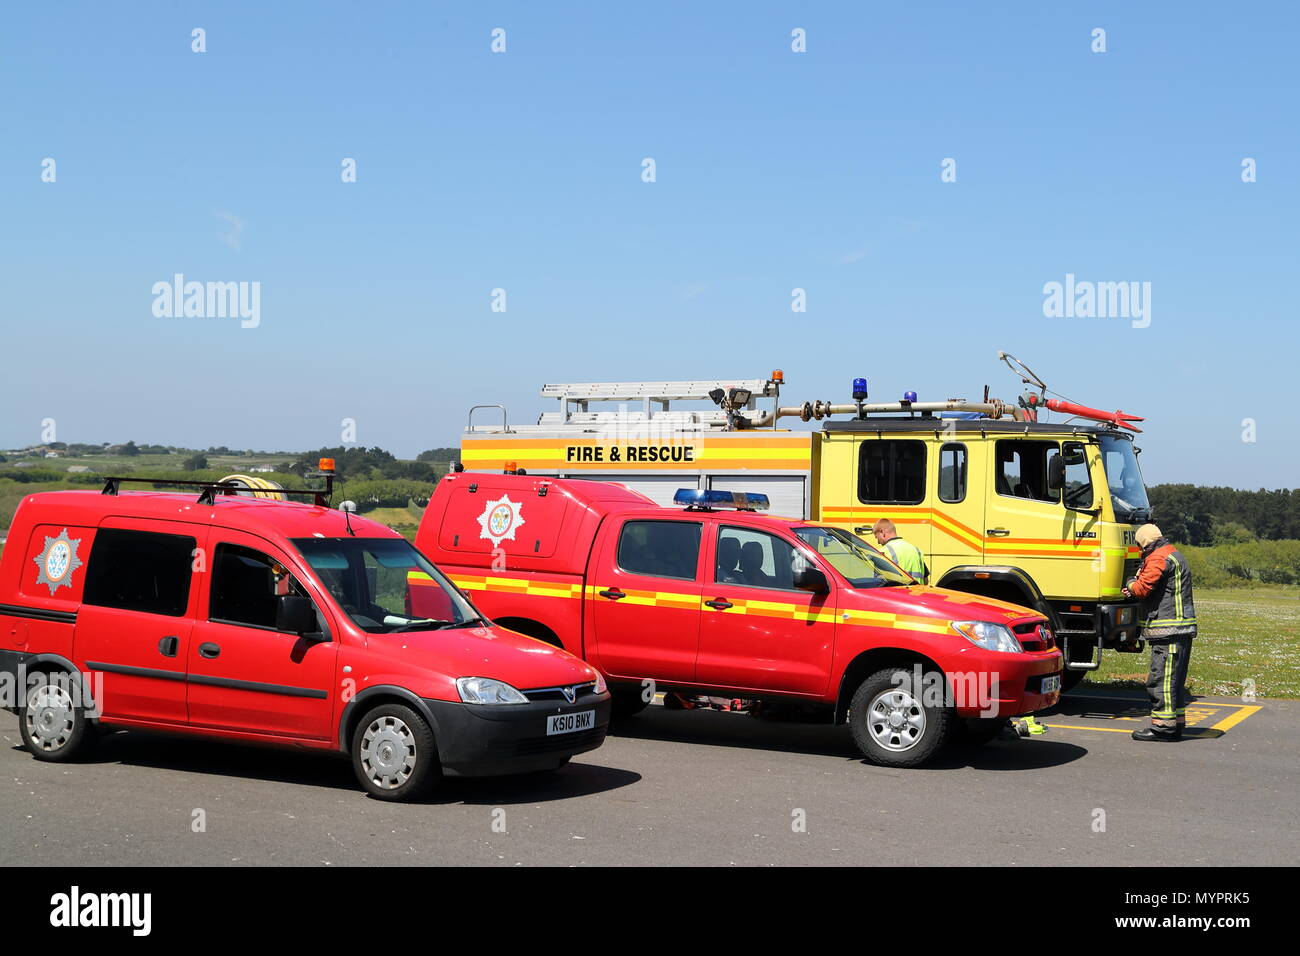 Firebrigade at the airport of St Marys, Isles of Scilly, UK - Stock Image